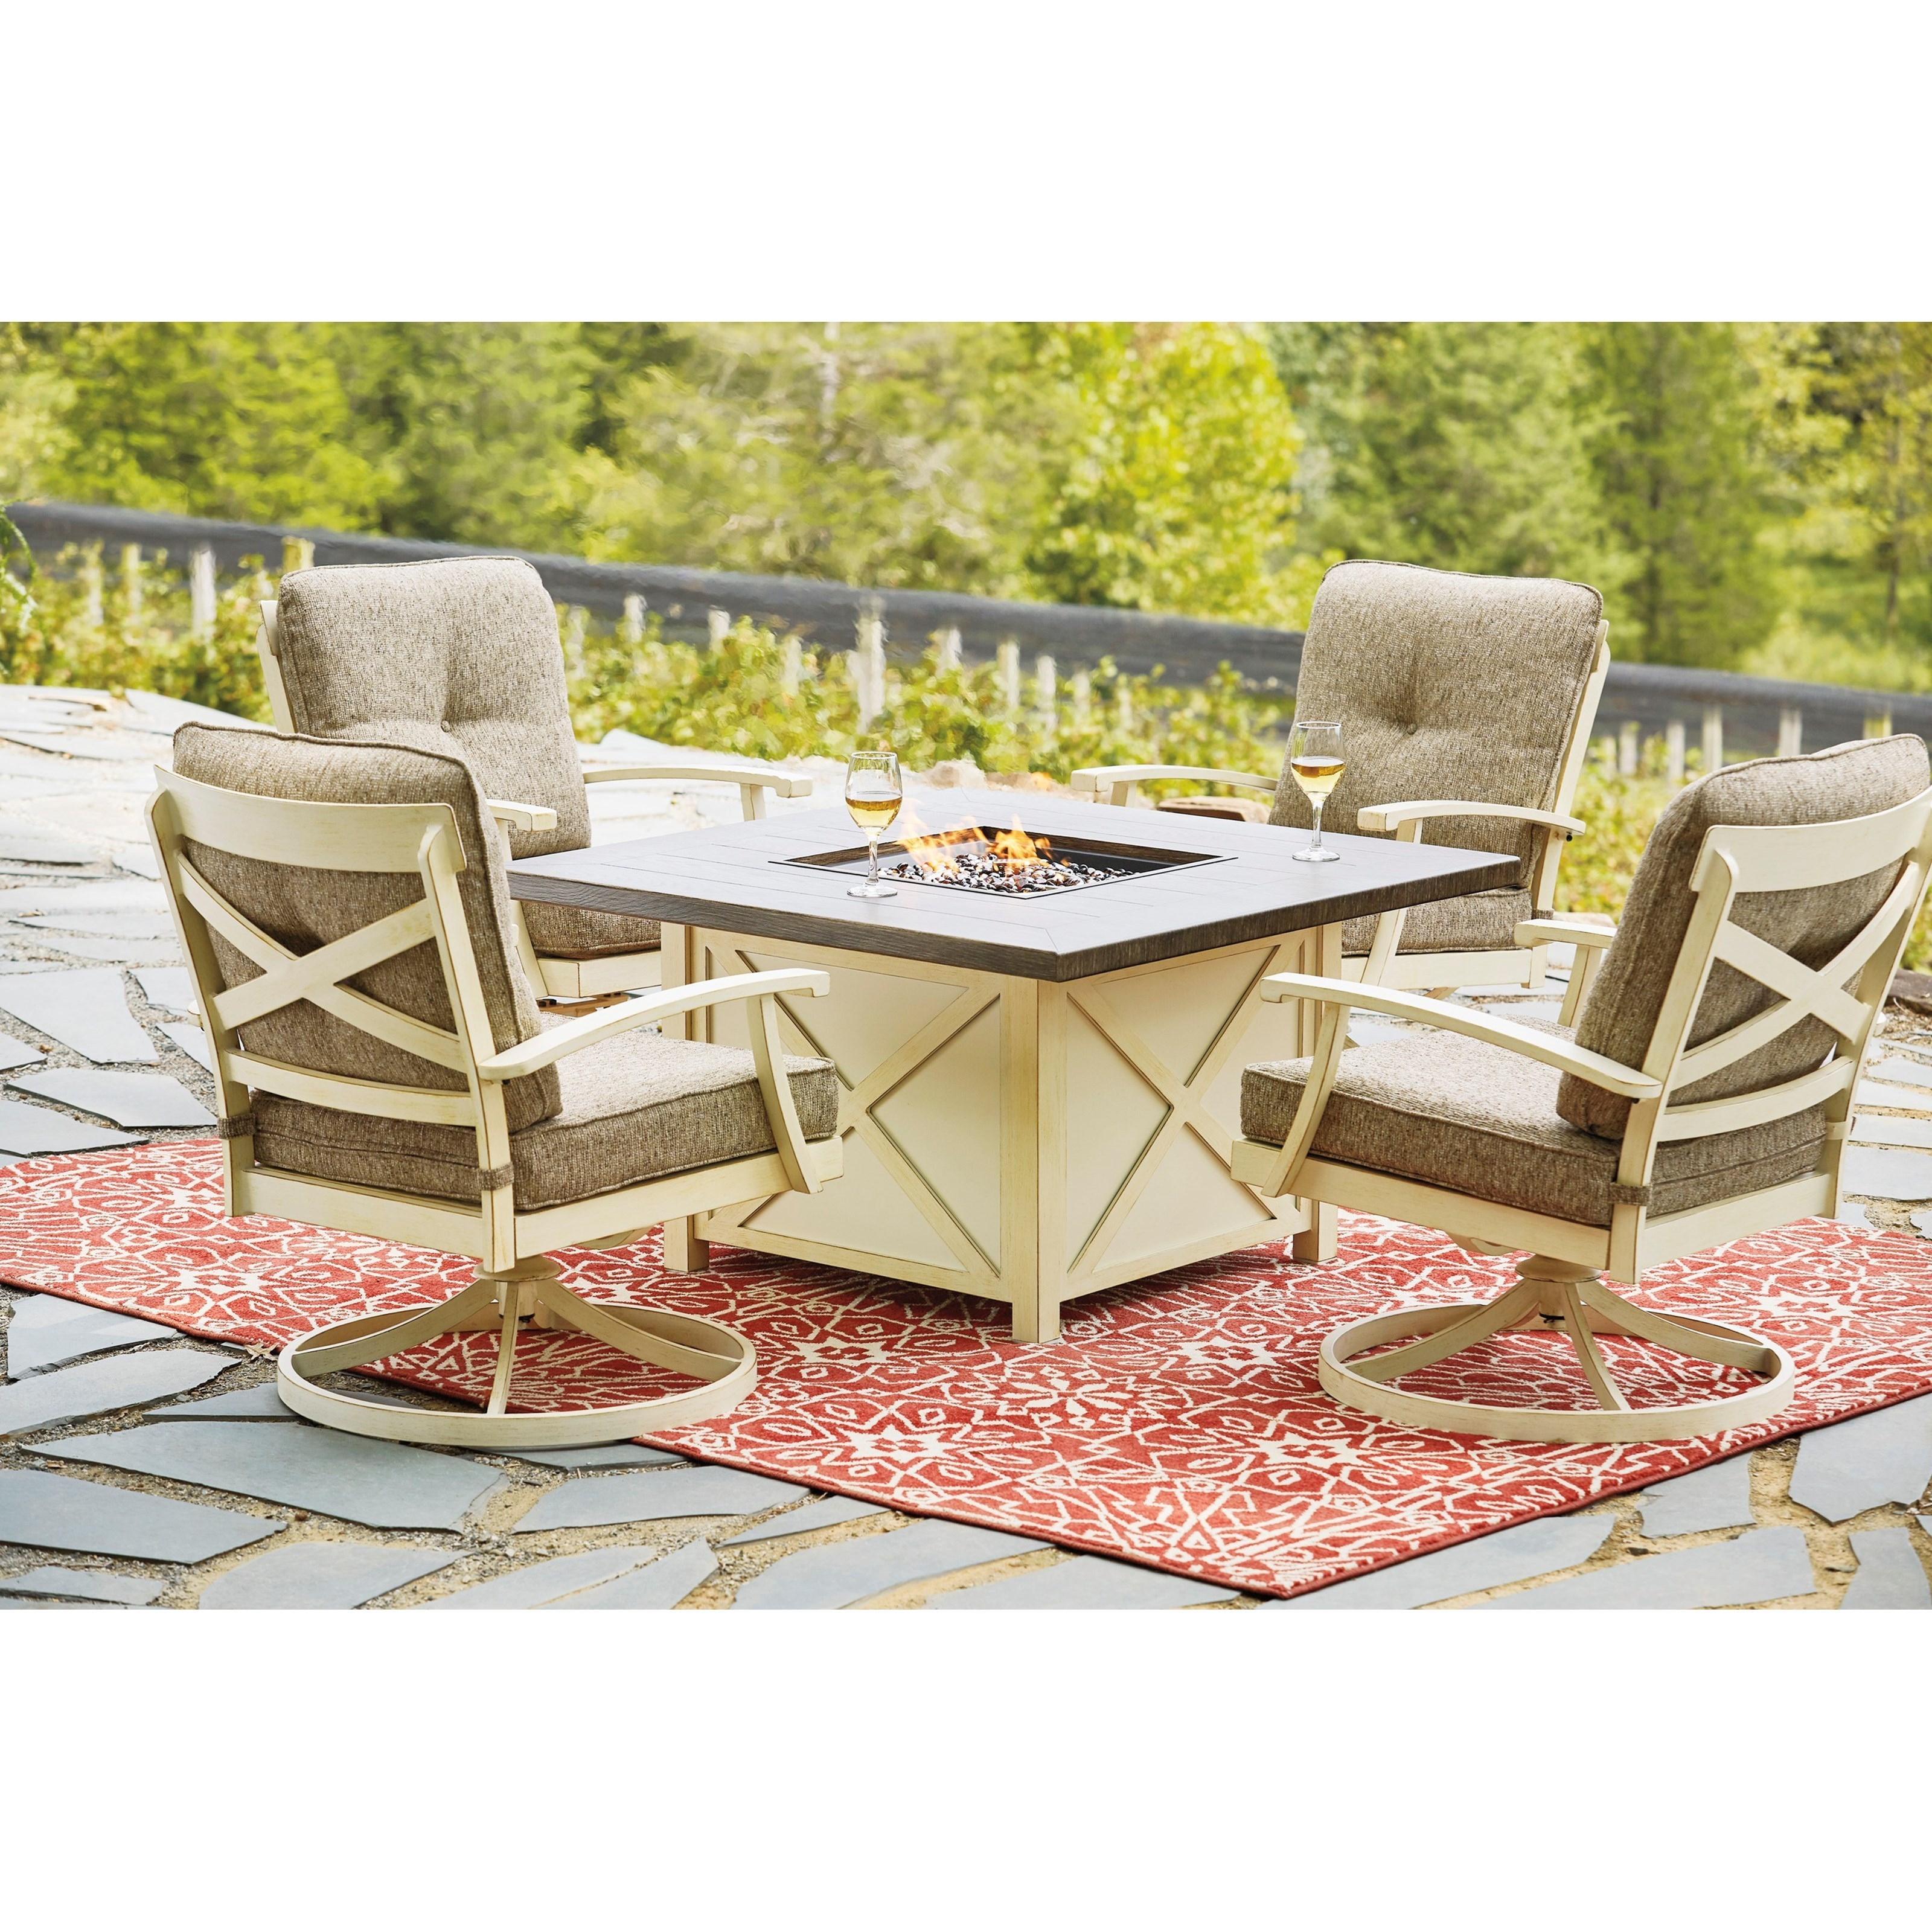 Image of: Signature Design By Ashley Preston Bay Outdoor Firepit Table Set Royal Furniture Outdoor Conversation Sets Outdoor Chat Sets